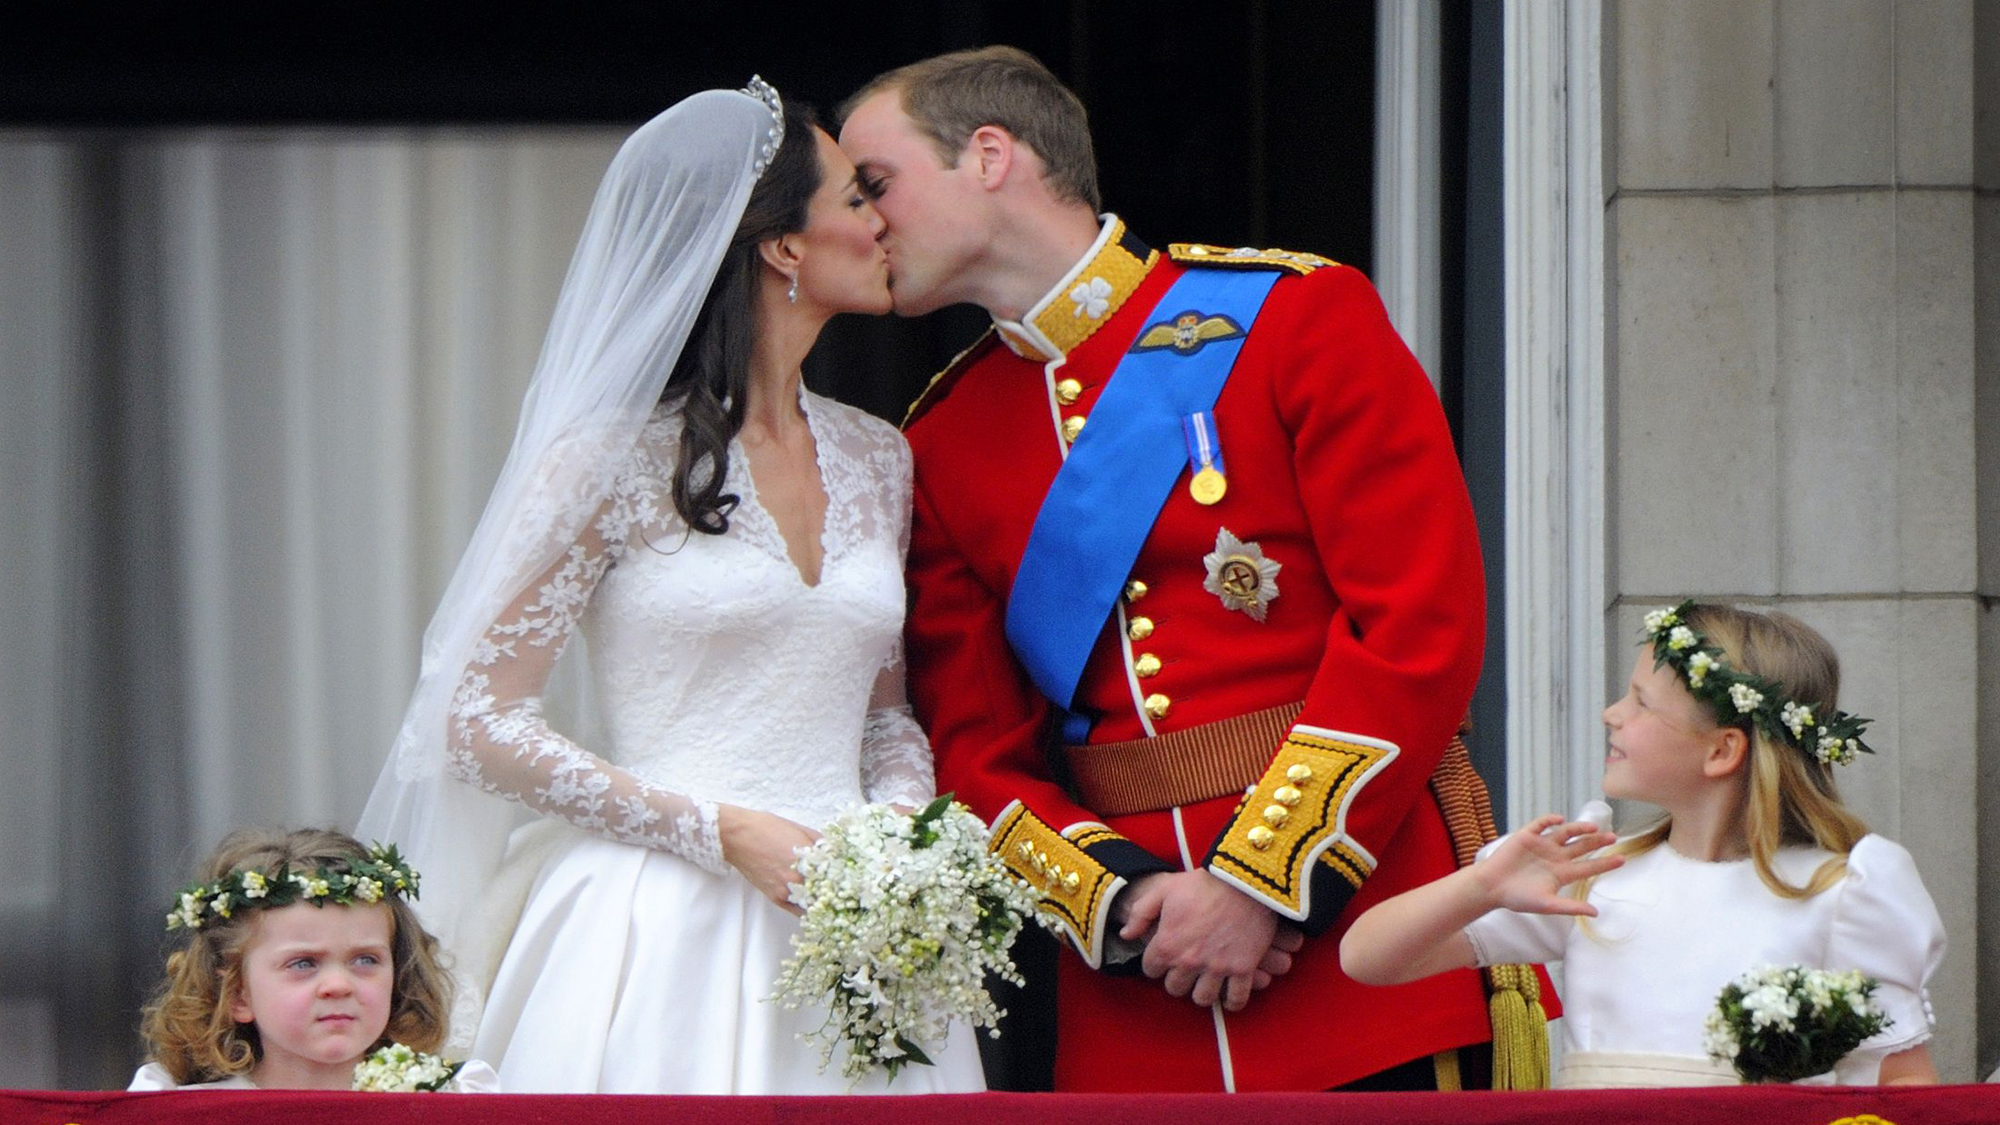 Kate Middleton Wedding Dress: Why It Is Making History